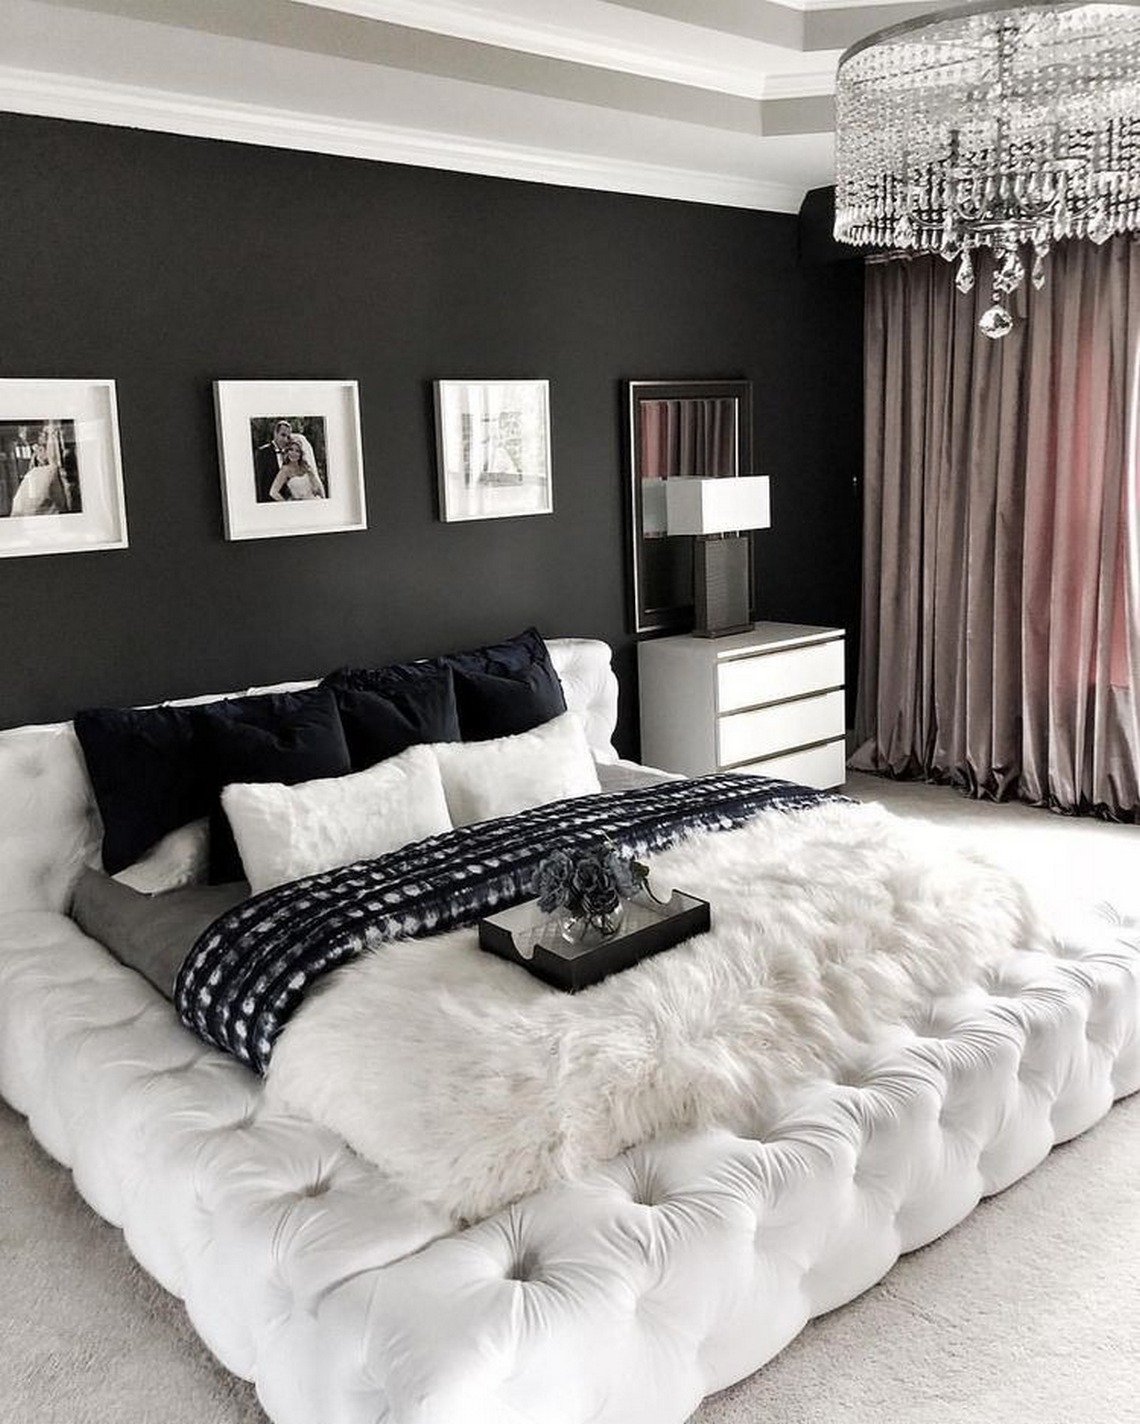 ✔25 Classy And Impressive Modern Black And White Bedroom Decor Styles